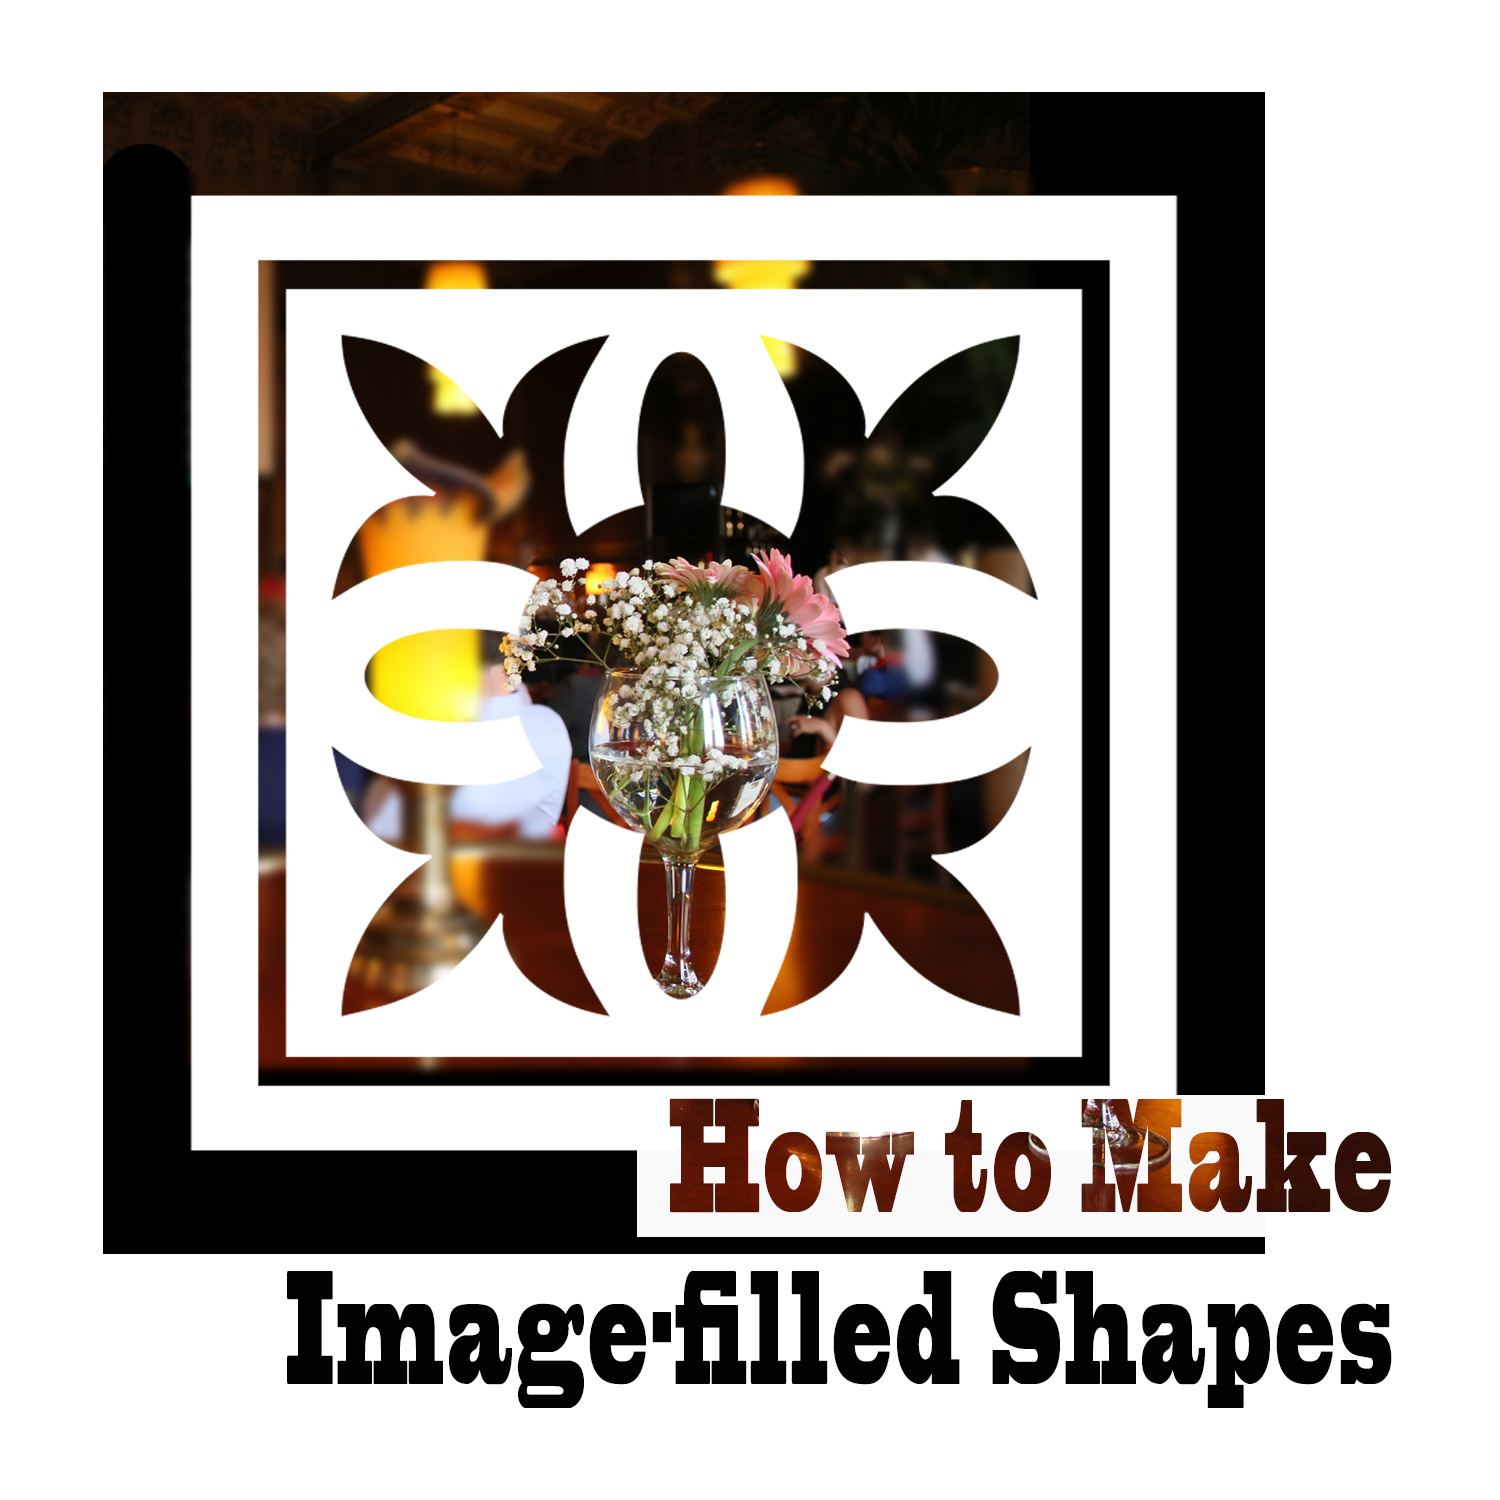 image-filled shapes Photoshop tutorial Intro1